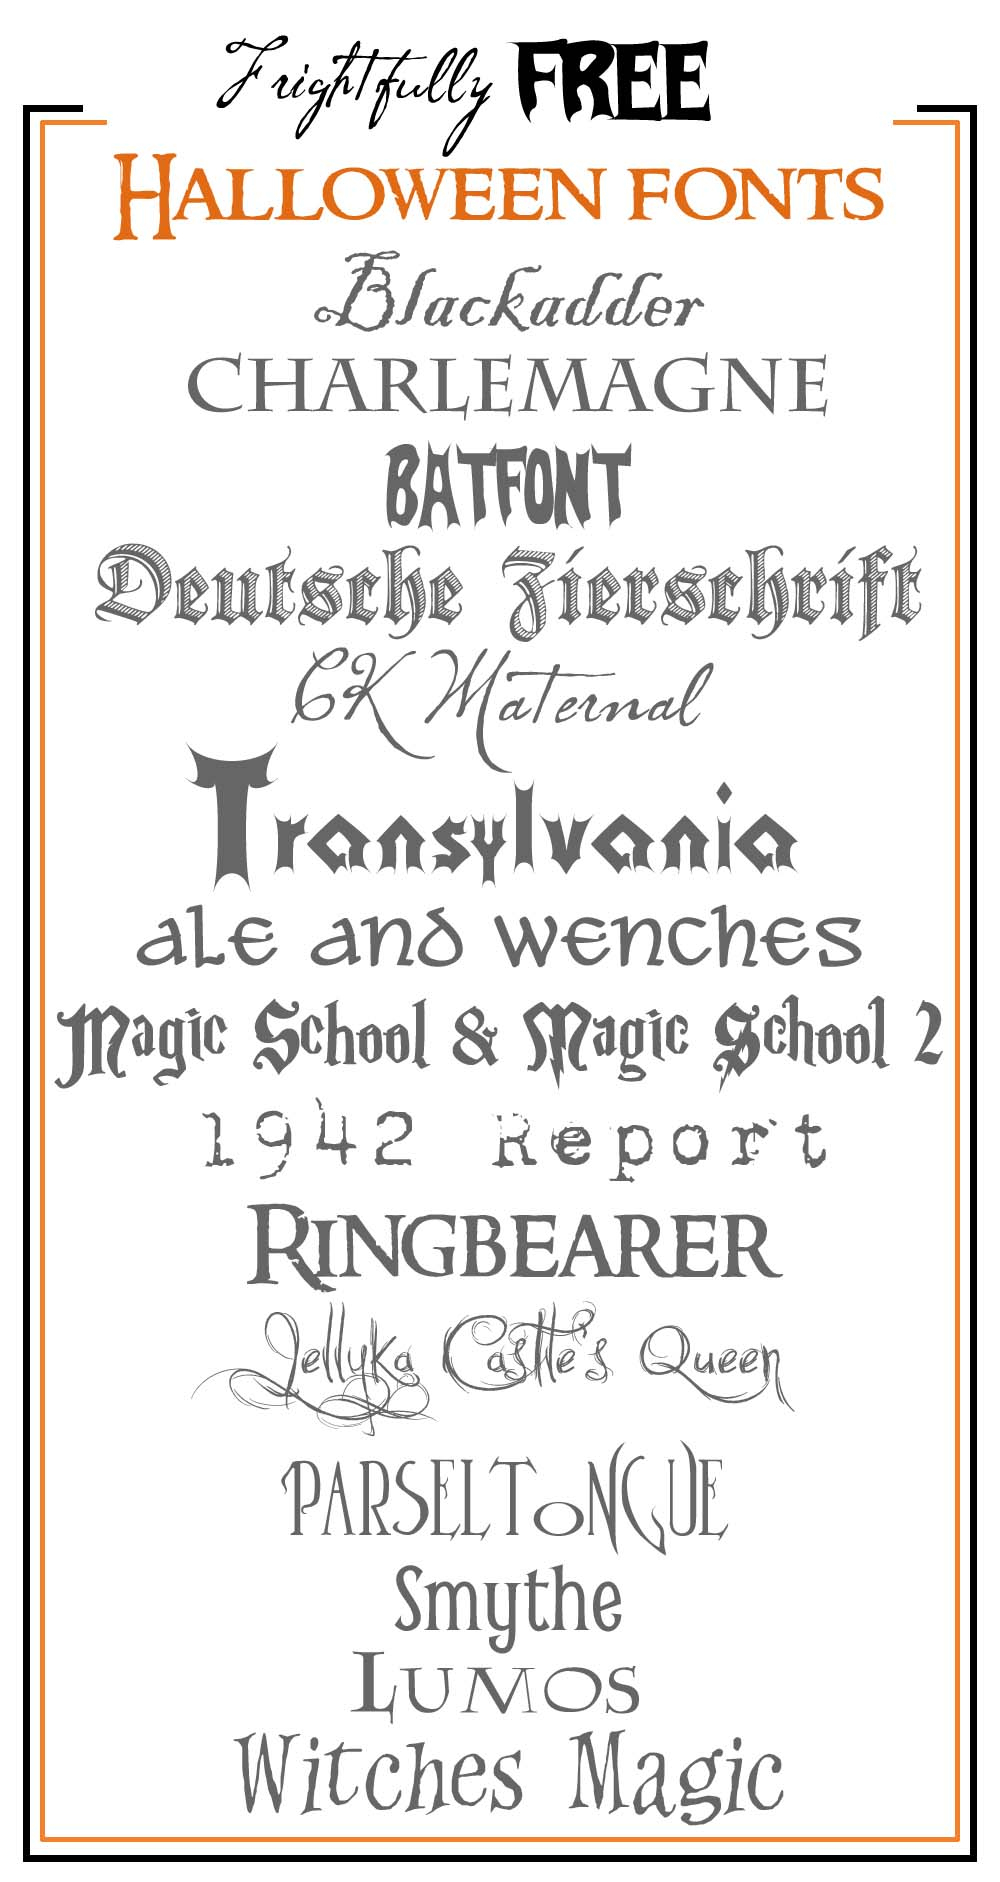 Frightfully Free Halloween Fonts - Free Printable Fonts